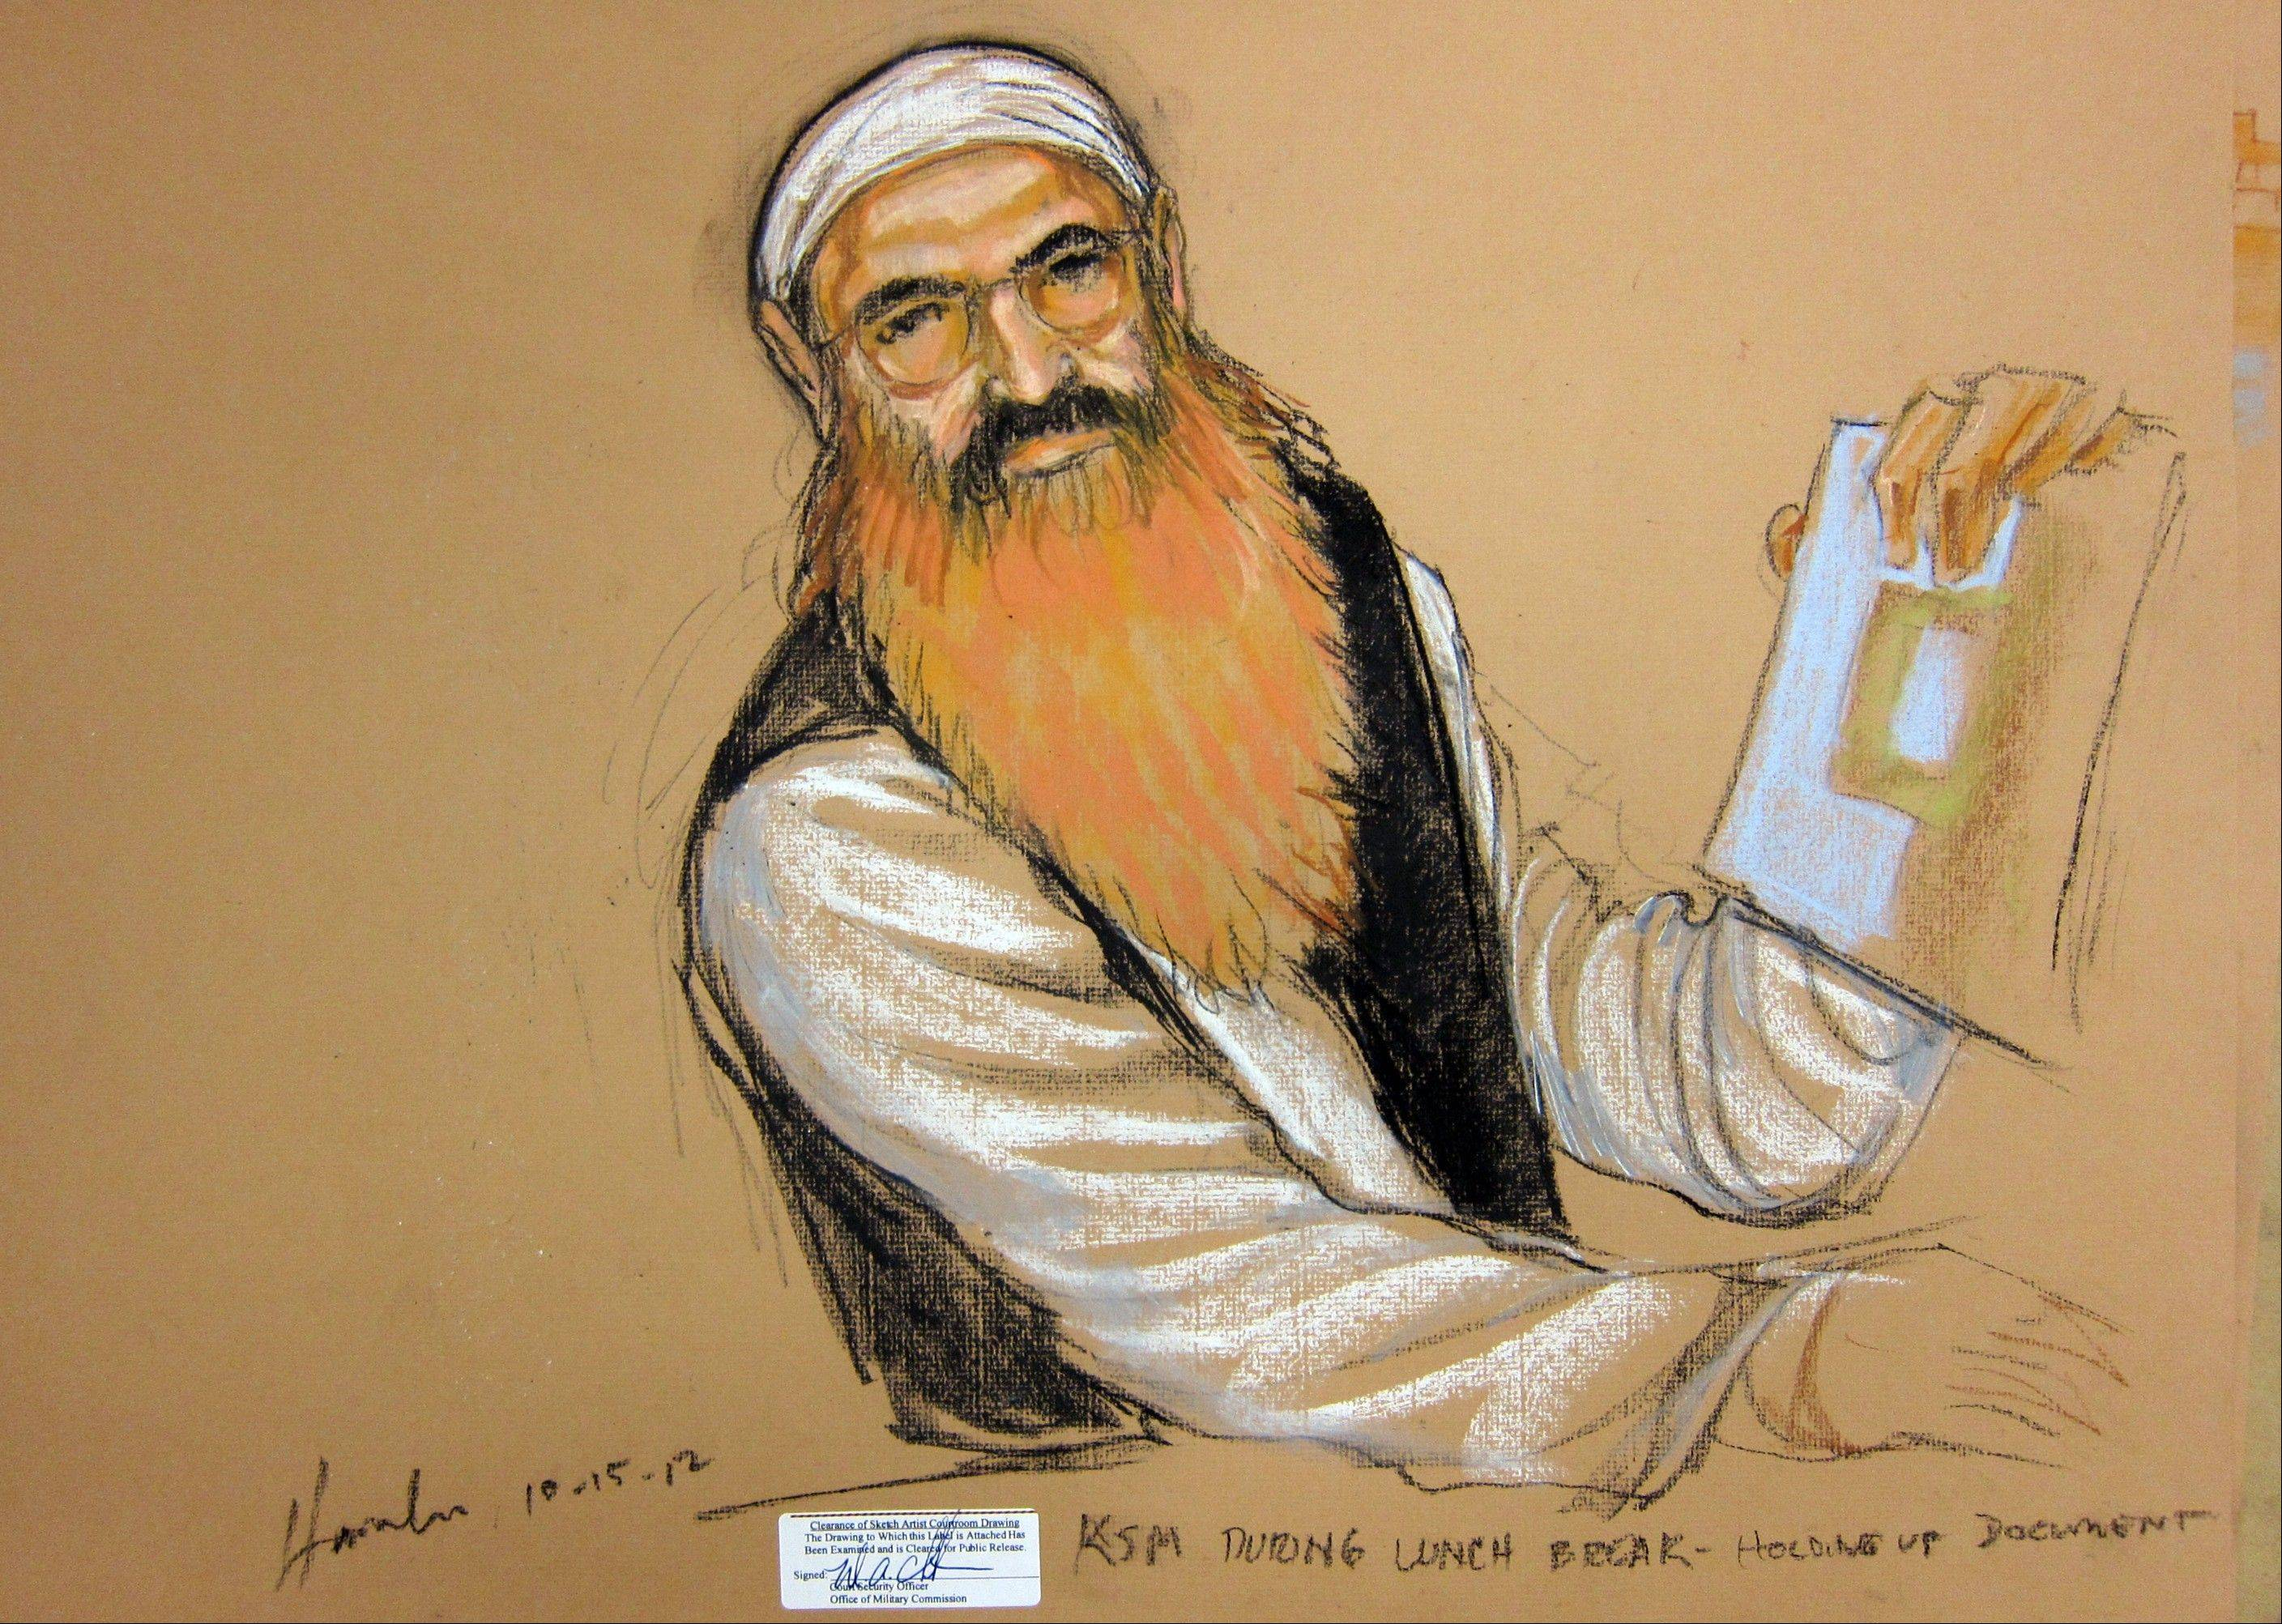 Khalid Sheikh Mohammed is seen in this courtroom sketch during a recess at his Military Commissions pretrial hearing in the Guantanamo Bay U.S. Naval Base in Cuba on Monday.